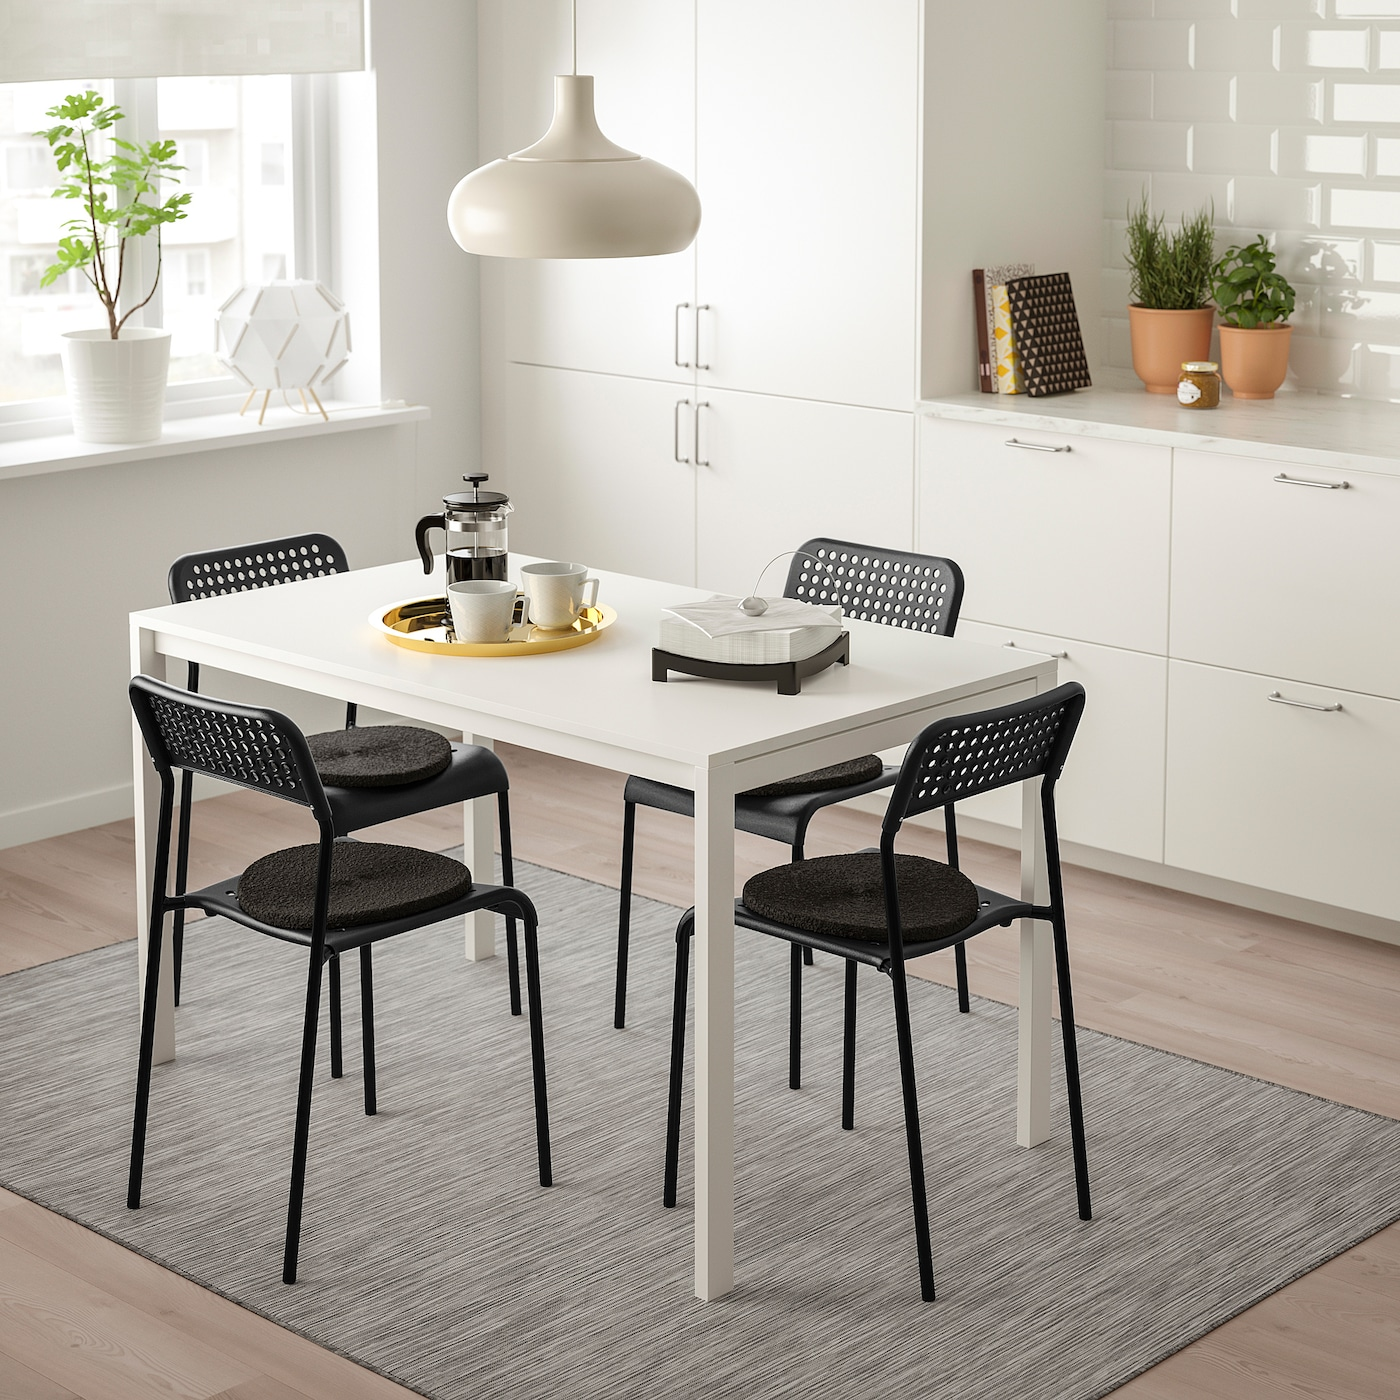 Picture of: Melltorp Adde Table And 4 Chairs White Black Ikea